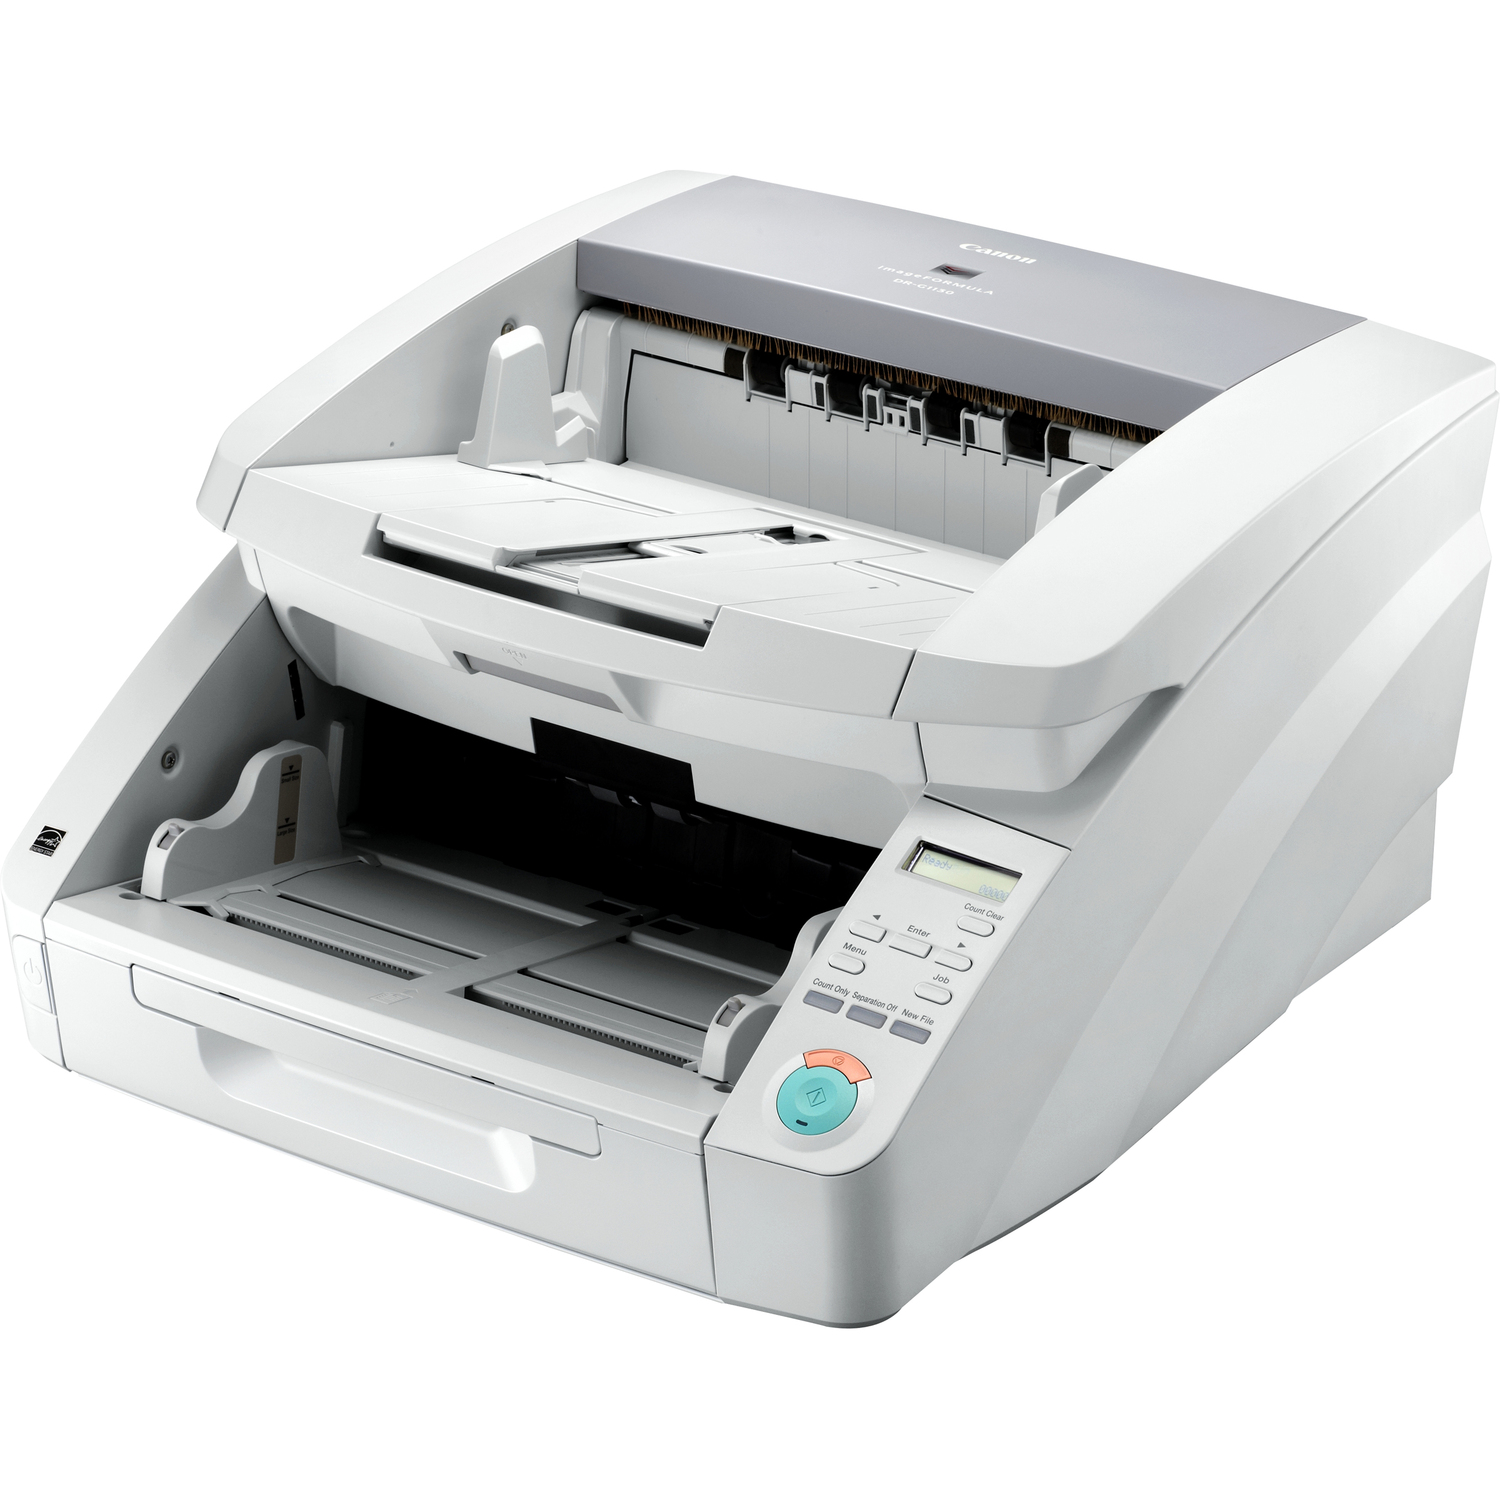 Canon imageFORMULA DR-G1130 Sheetfed Scanner - 600 dpi Optical